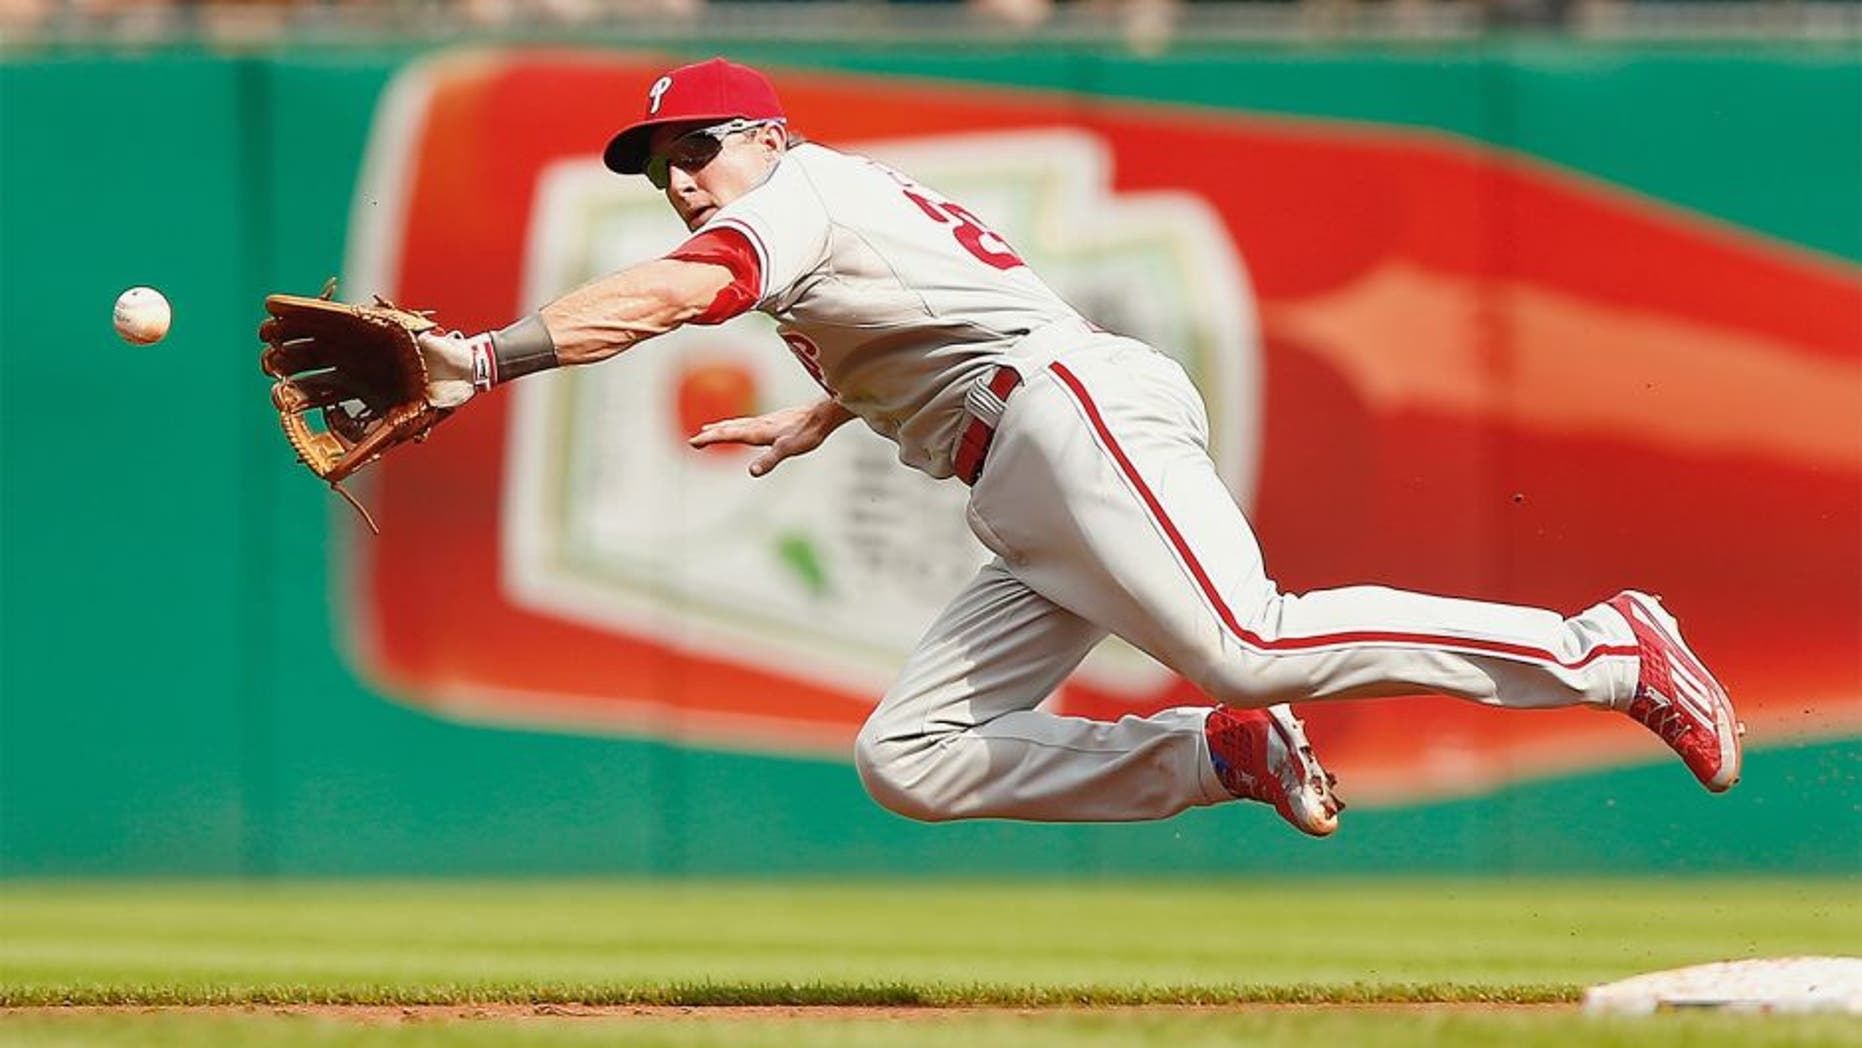 PITTSBURGH, PA - JUNE 13: Chase Utley #26 of the Philadelphia Phillies fields a ground ball while midair in the second inning against the Pittsburgh Pirates during the game at PNC Park on June 13, 2015 in Pittsburgh, Pennsylvania. (Photo by Jared Wickerham/Getty Images)